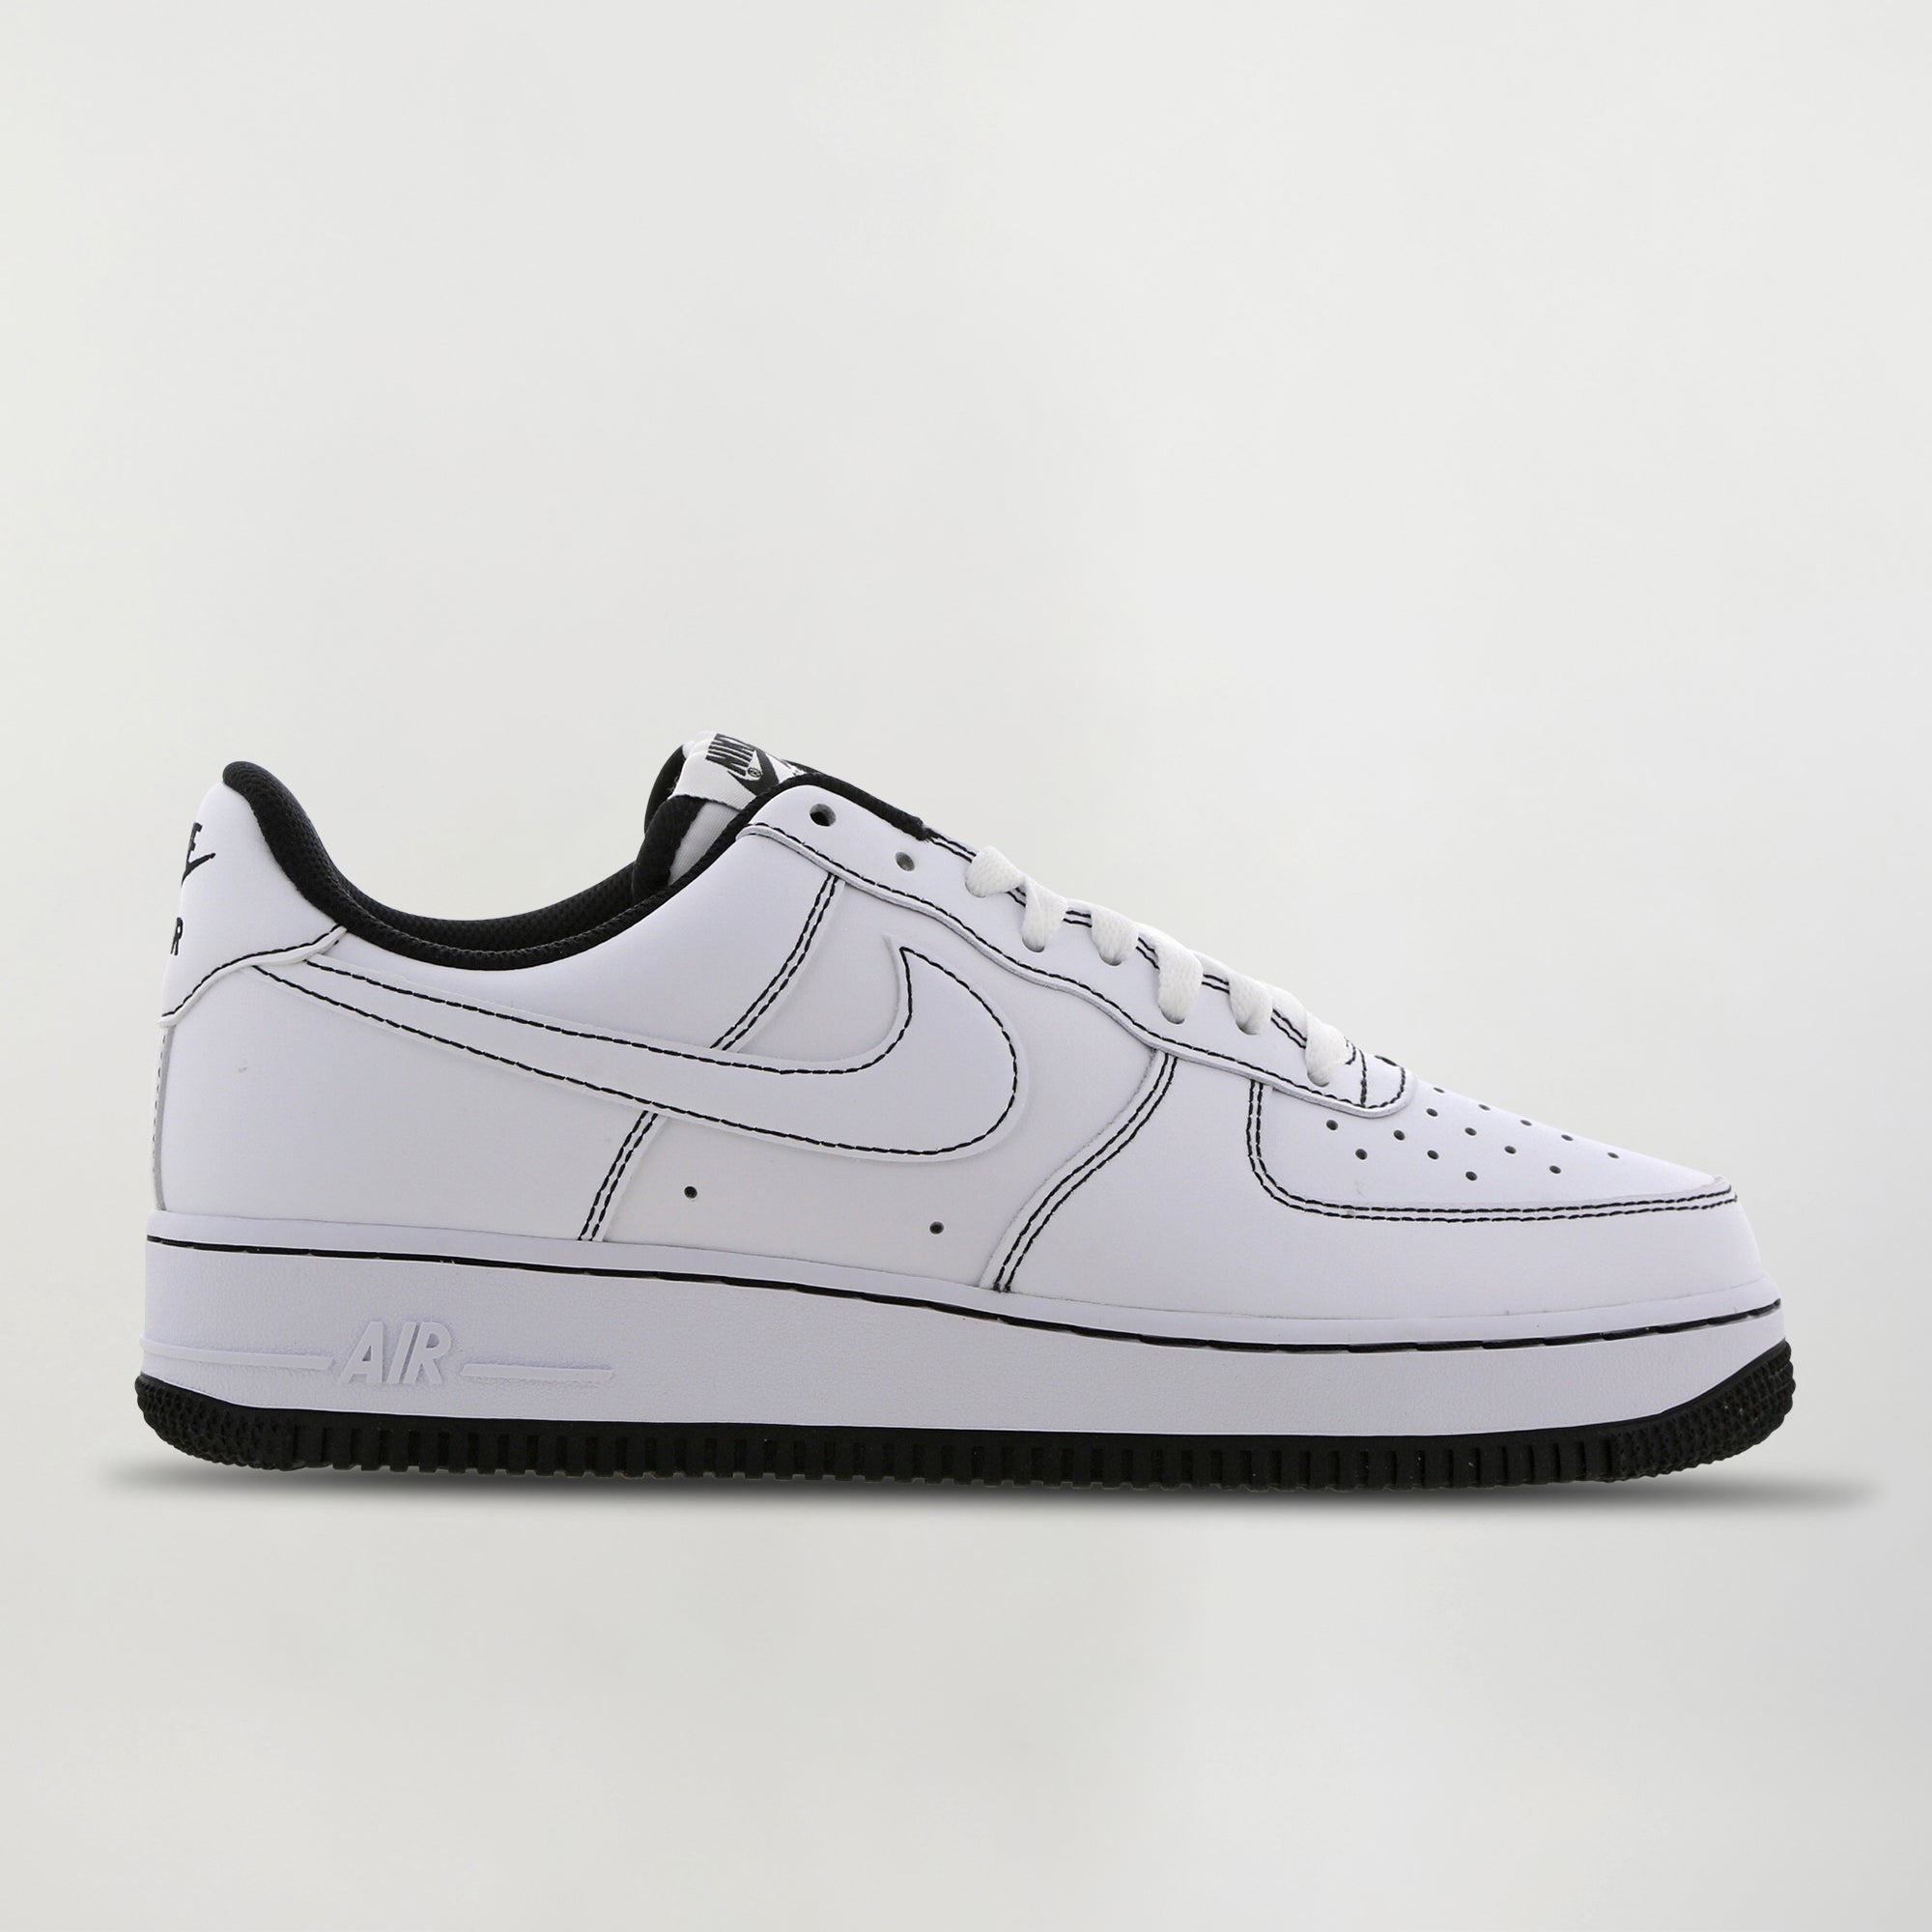 Nike Air Force 1 Low - Chaussures Pour Hommes